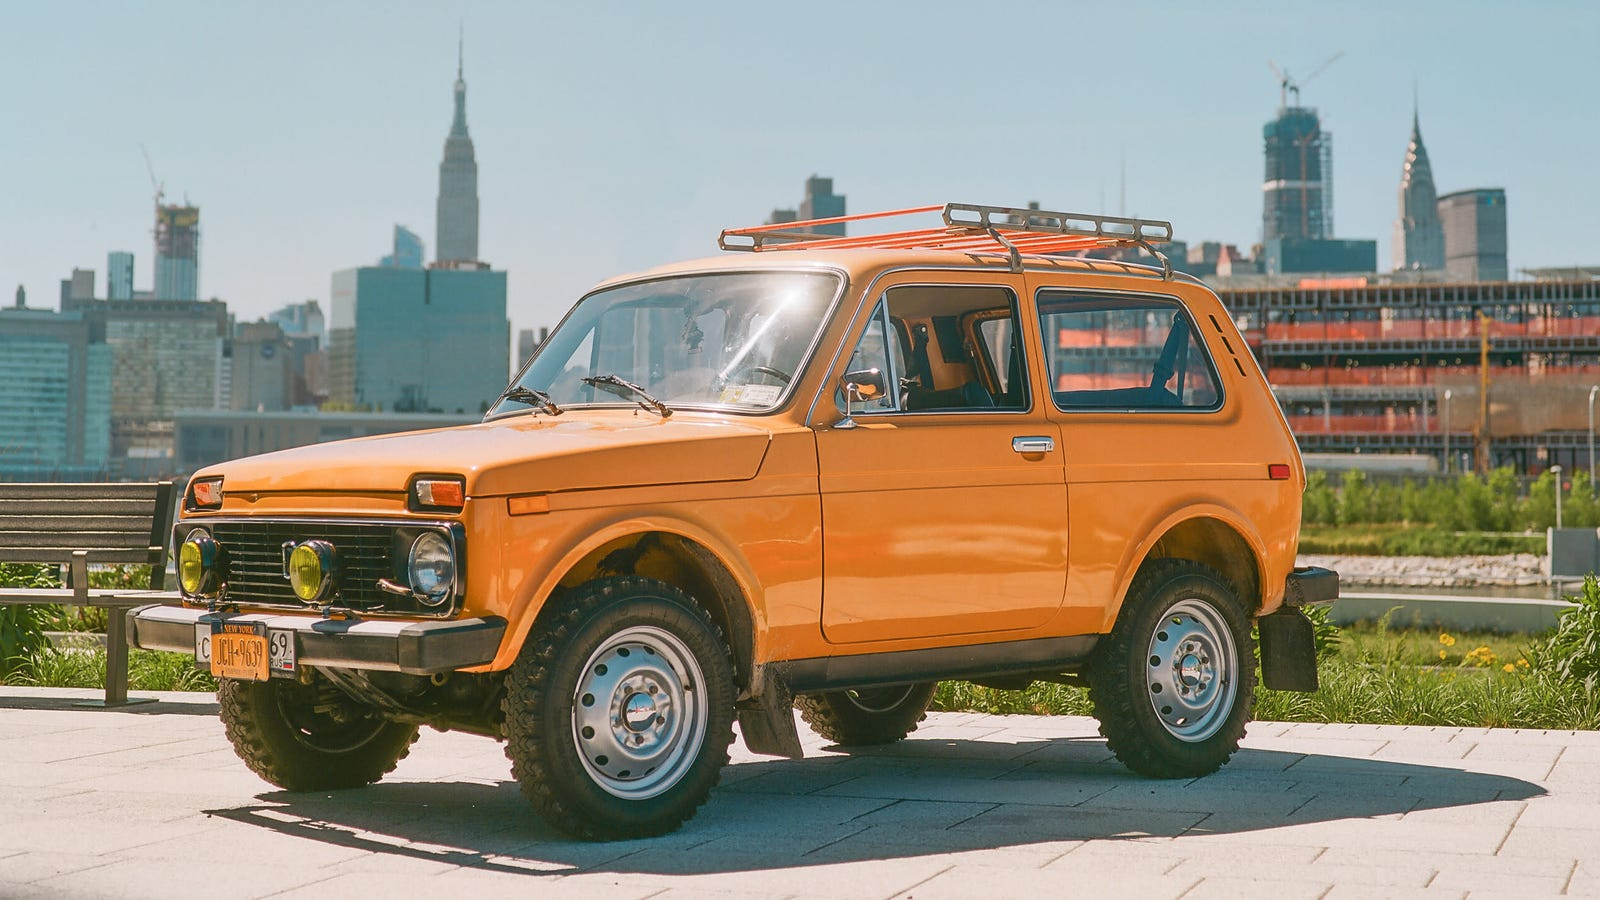 The Story Behind The Bright Orange Soviet 4x4 Rolling Through Brooklyn